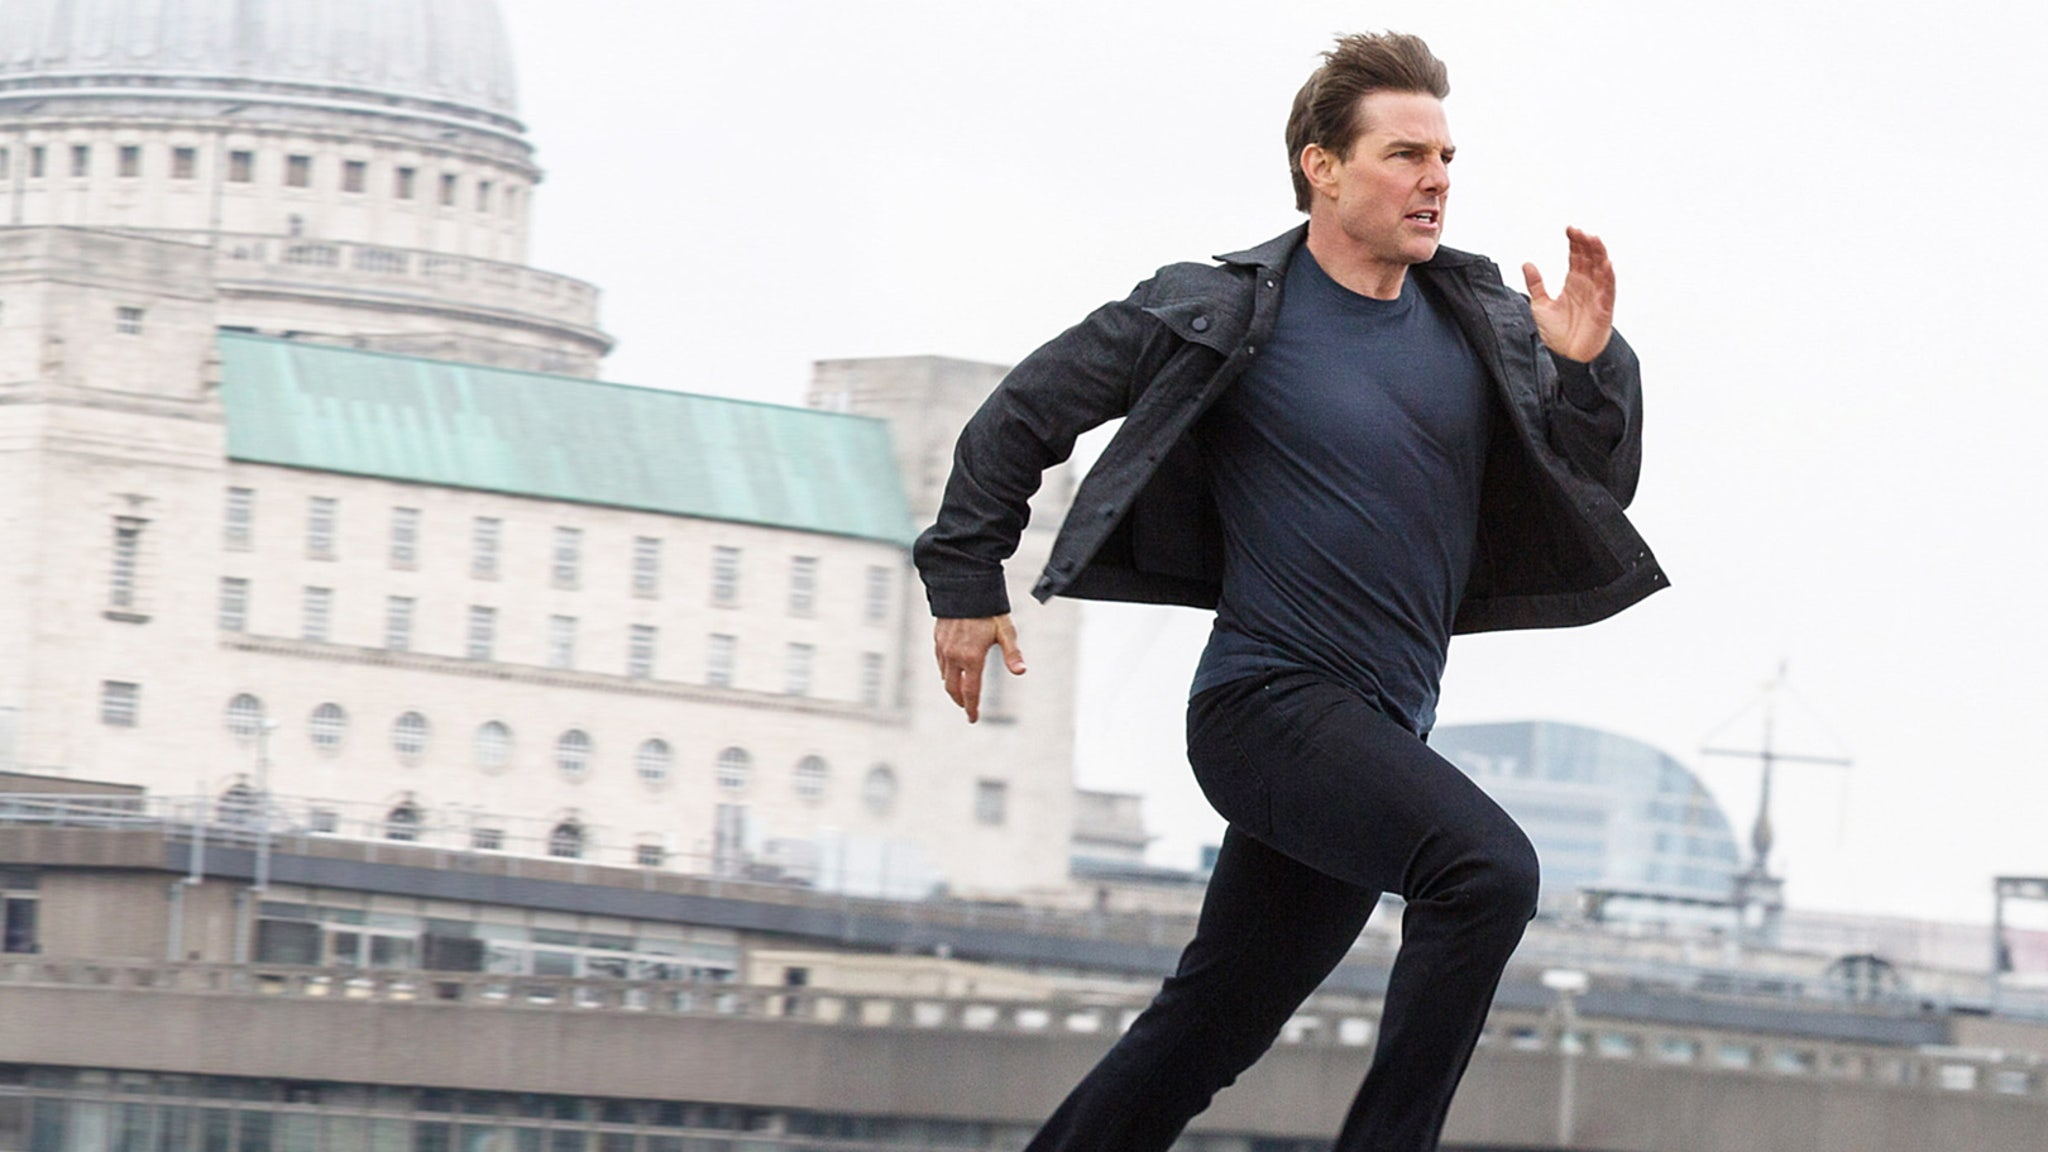 Tom Cruise Won't Let Other Actors Run Next to Him On-Screen, Claims Former Co-Star